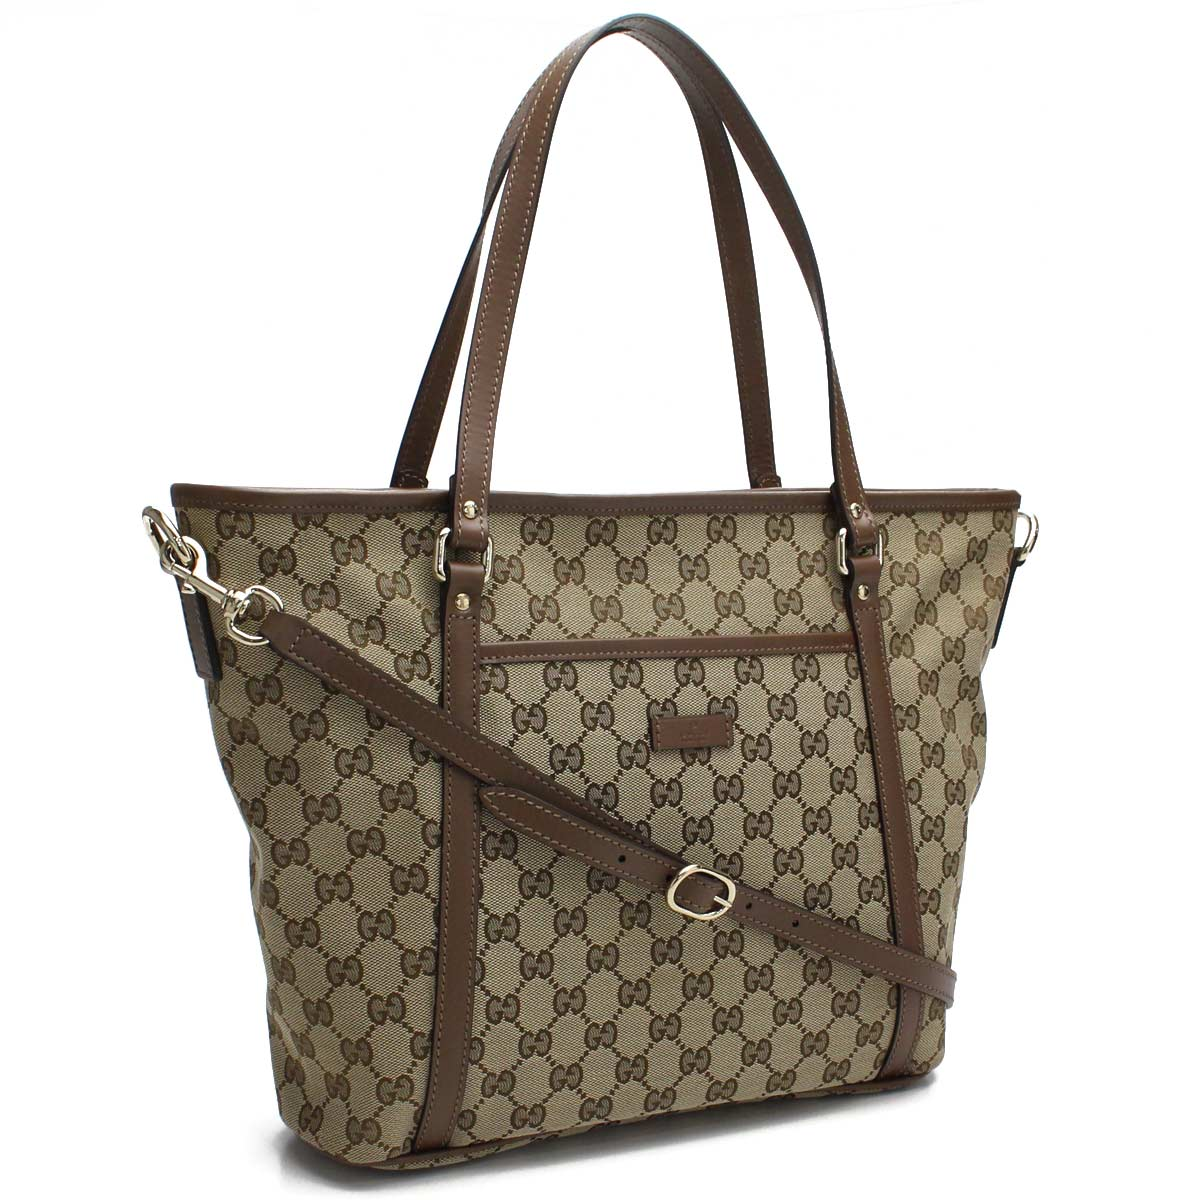 レディースバッグ, トートバッグ  GUCCI GG 2way 388929 KQWFZ 8871 tote BAG ladies ladies